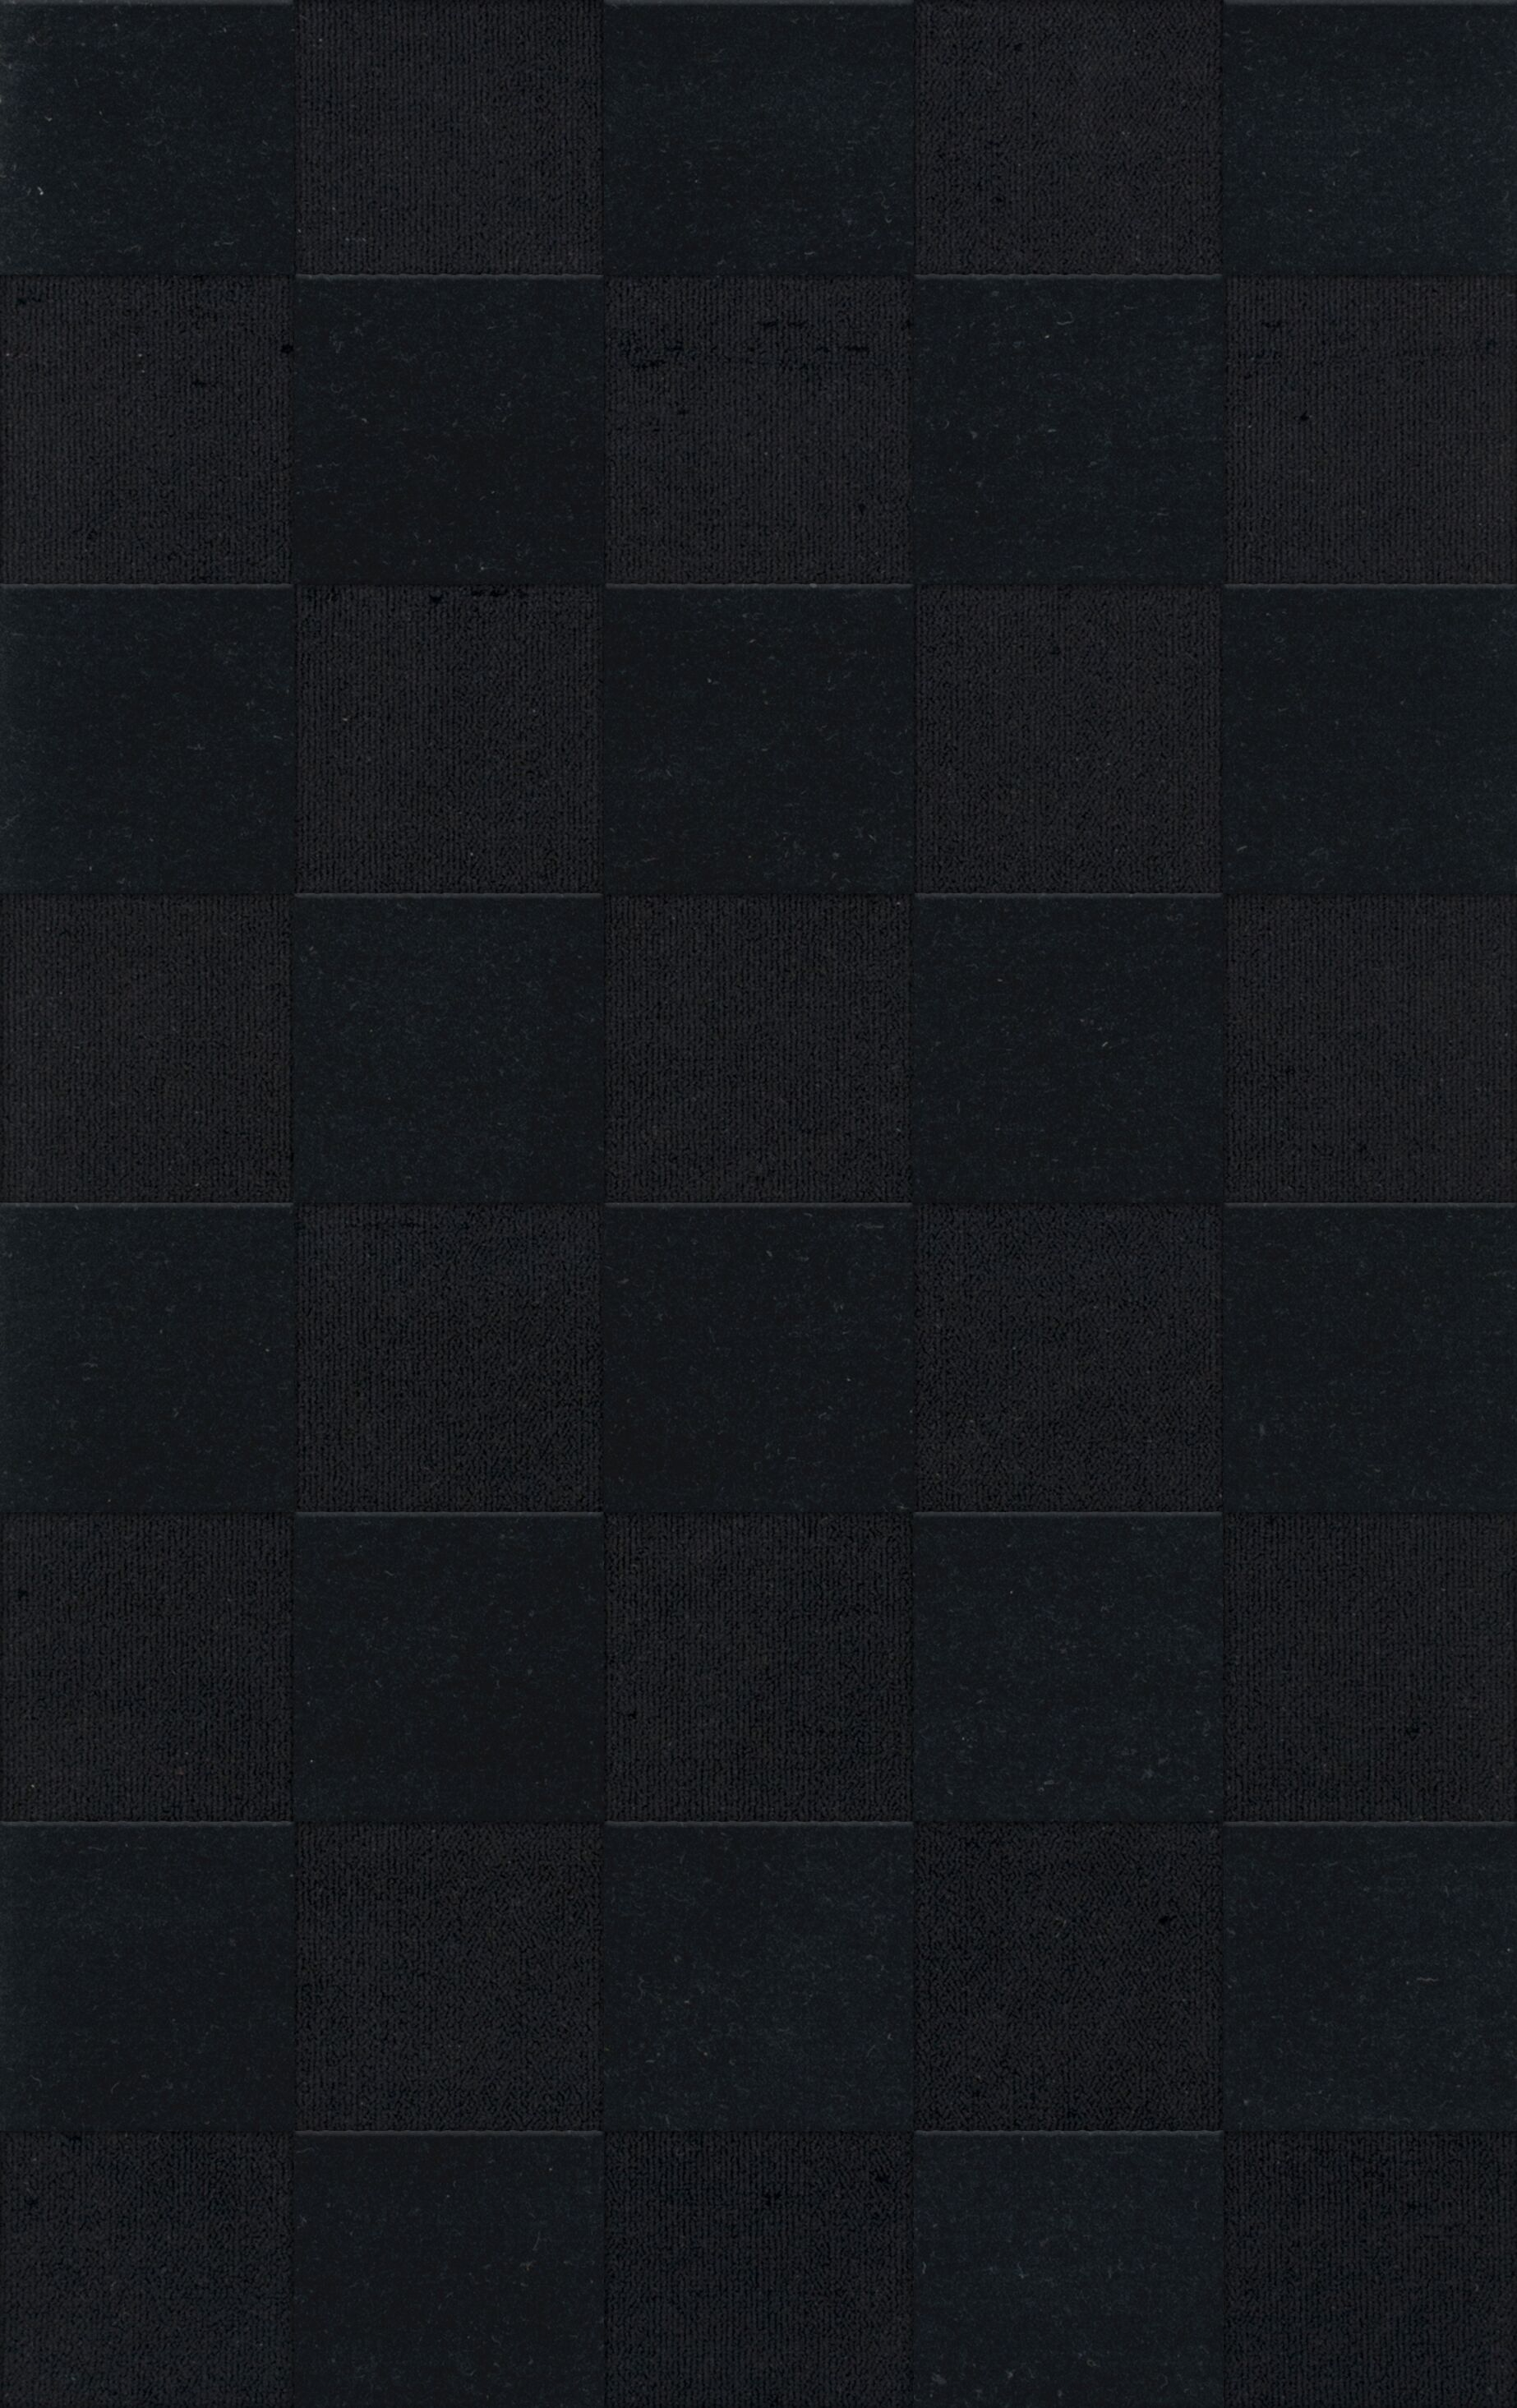 Dover Tufted Wool Black Area Rug Rug Size: Rectangle 4' x 6'